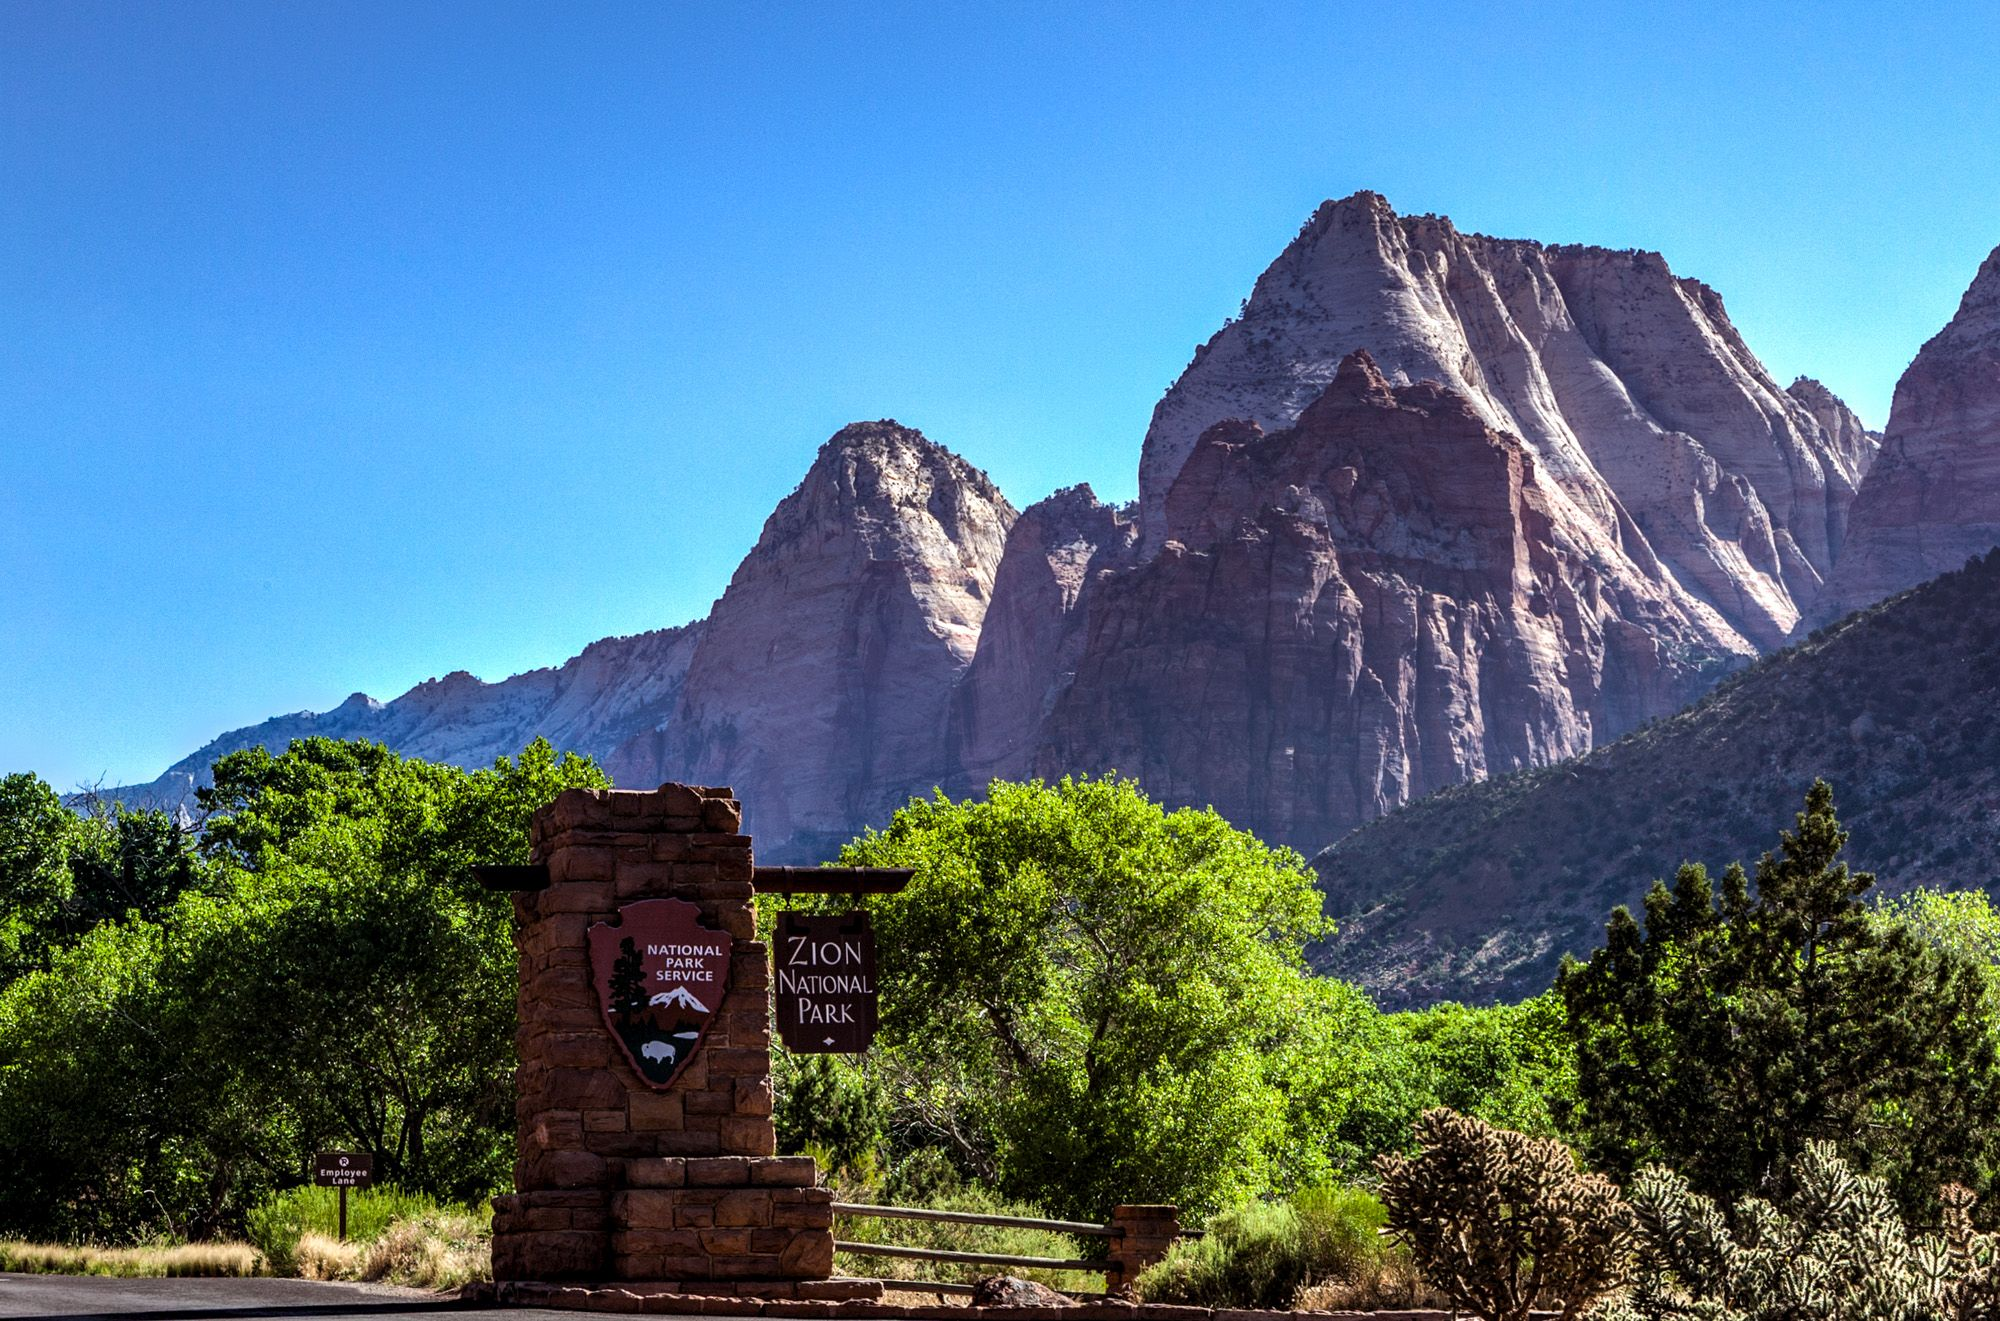 Free Entrance Days in the National Parks August 25 through 28, 2016